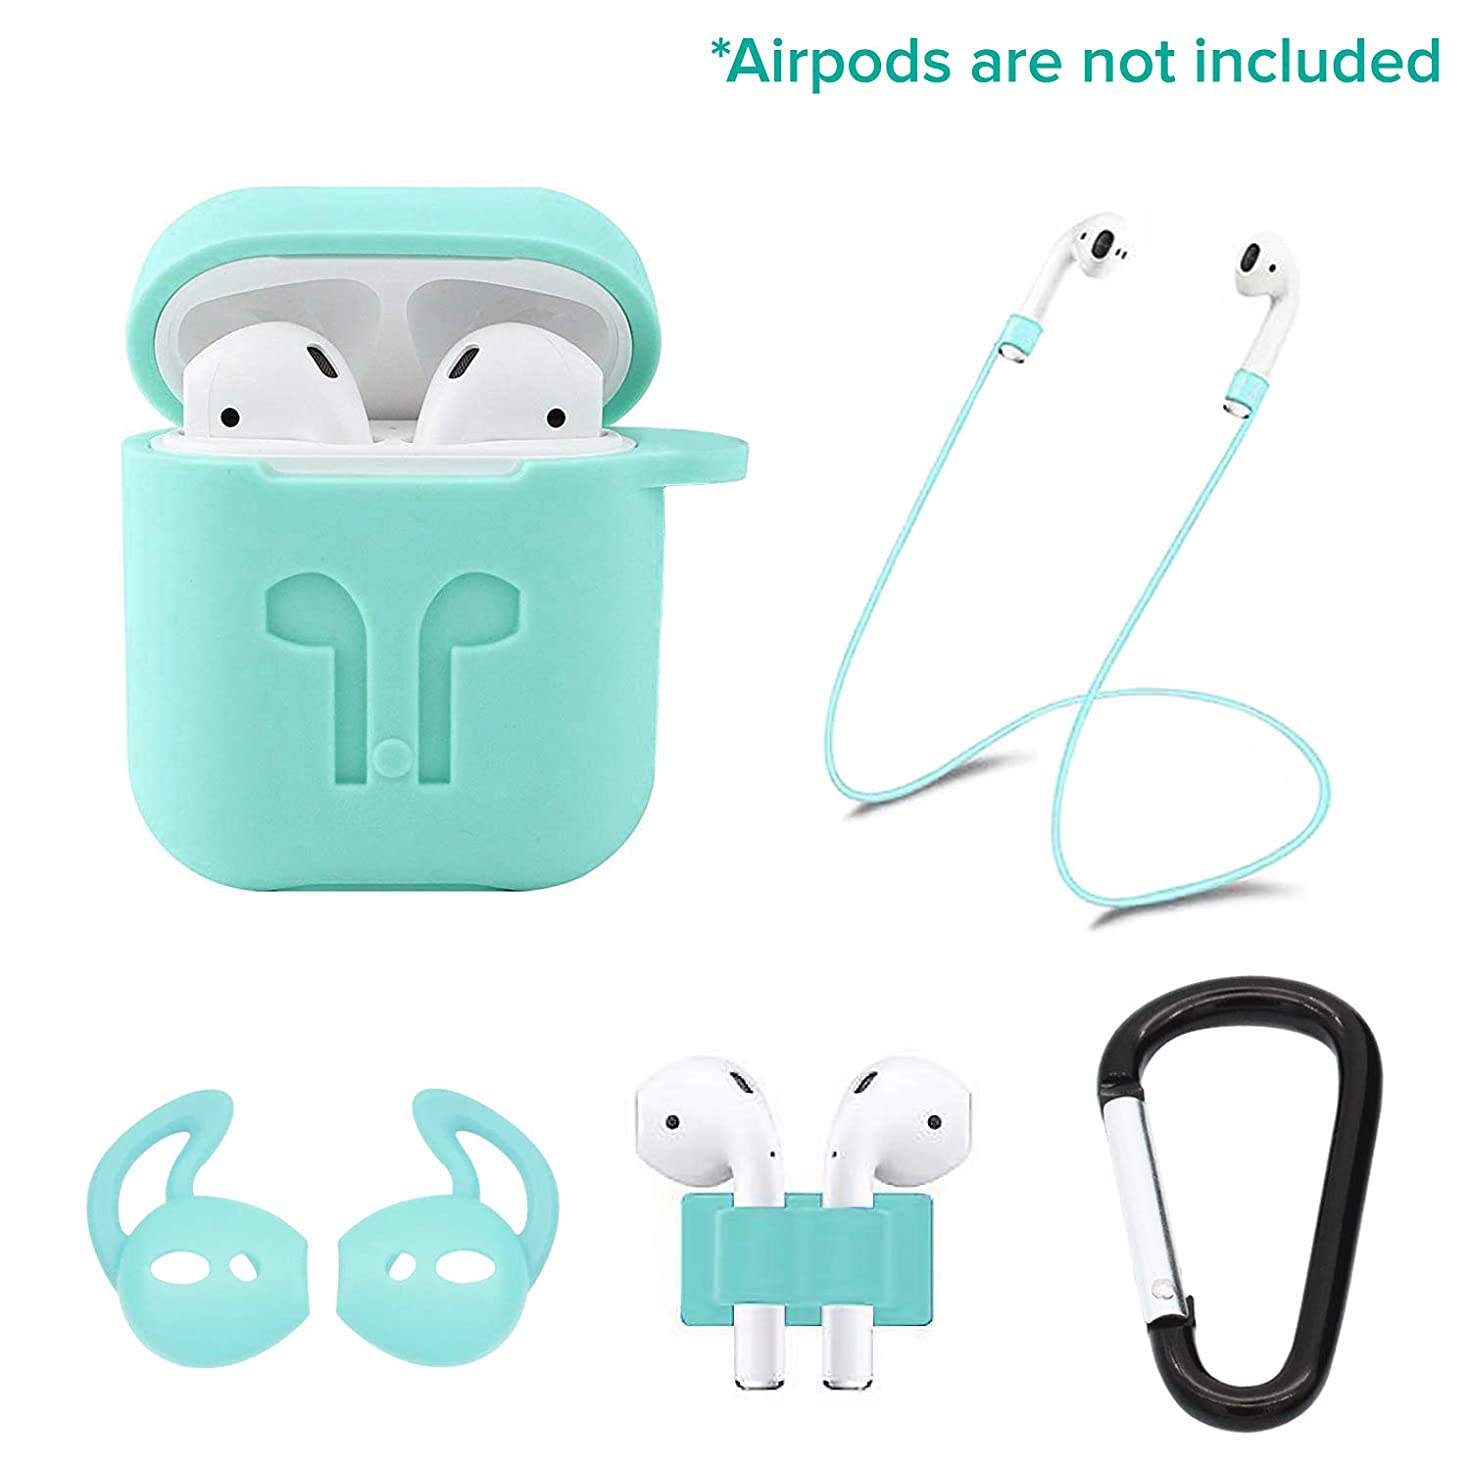 Casism AirPods Case 5 in 1 Airpods Accessories Kits Protective Silicone Case and Cover for Charging Case with Airpods Strap/Airpods Ear Hooks/Anti-Lost Carabiner/Airpods Watch Band Holder (Mint)